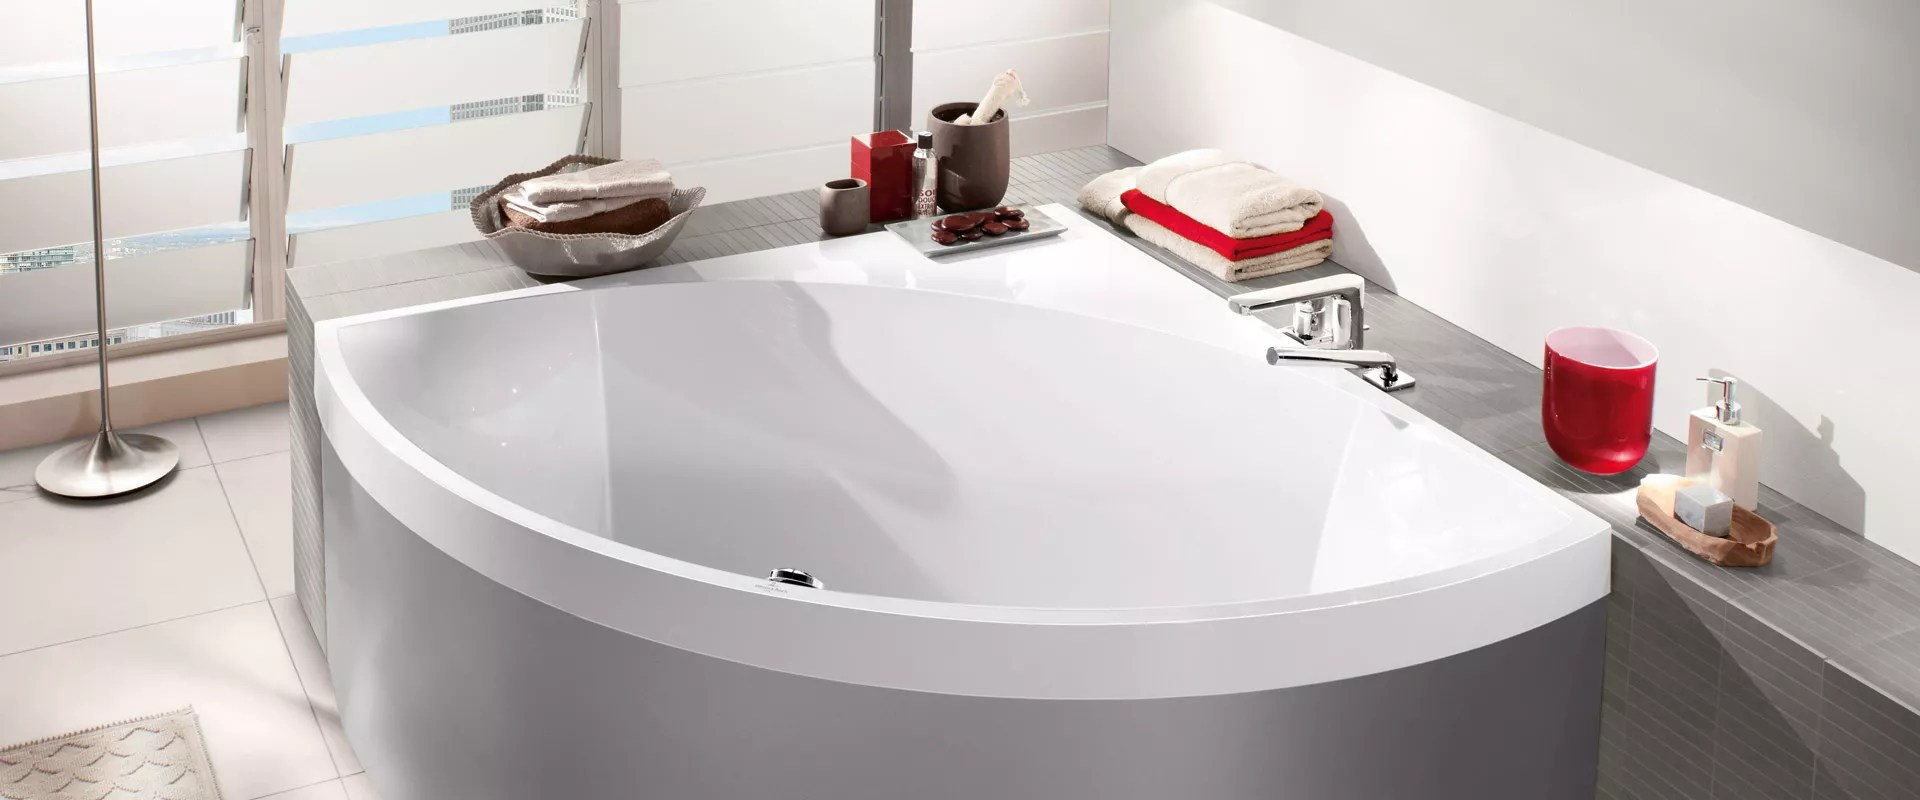 Collection Squaro From Villeroy Boch - Villeroy Und Boch Bad Dwg